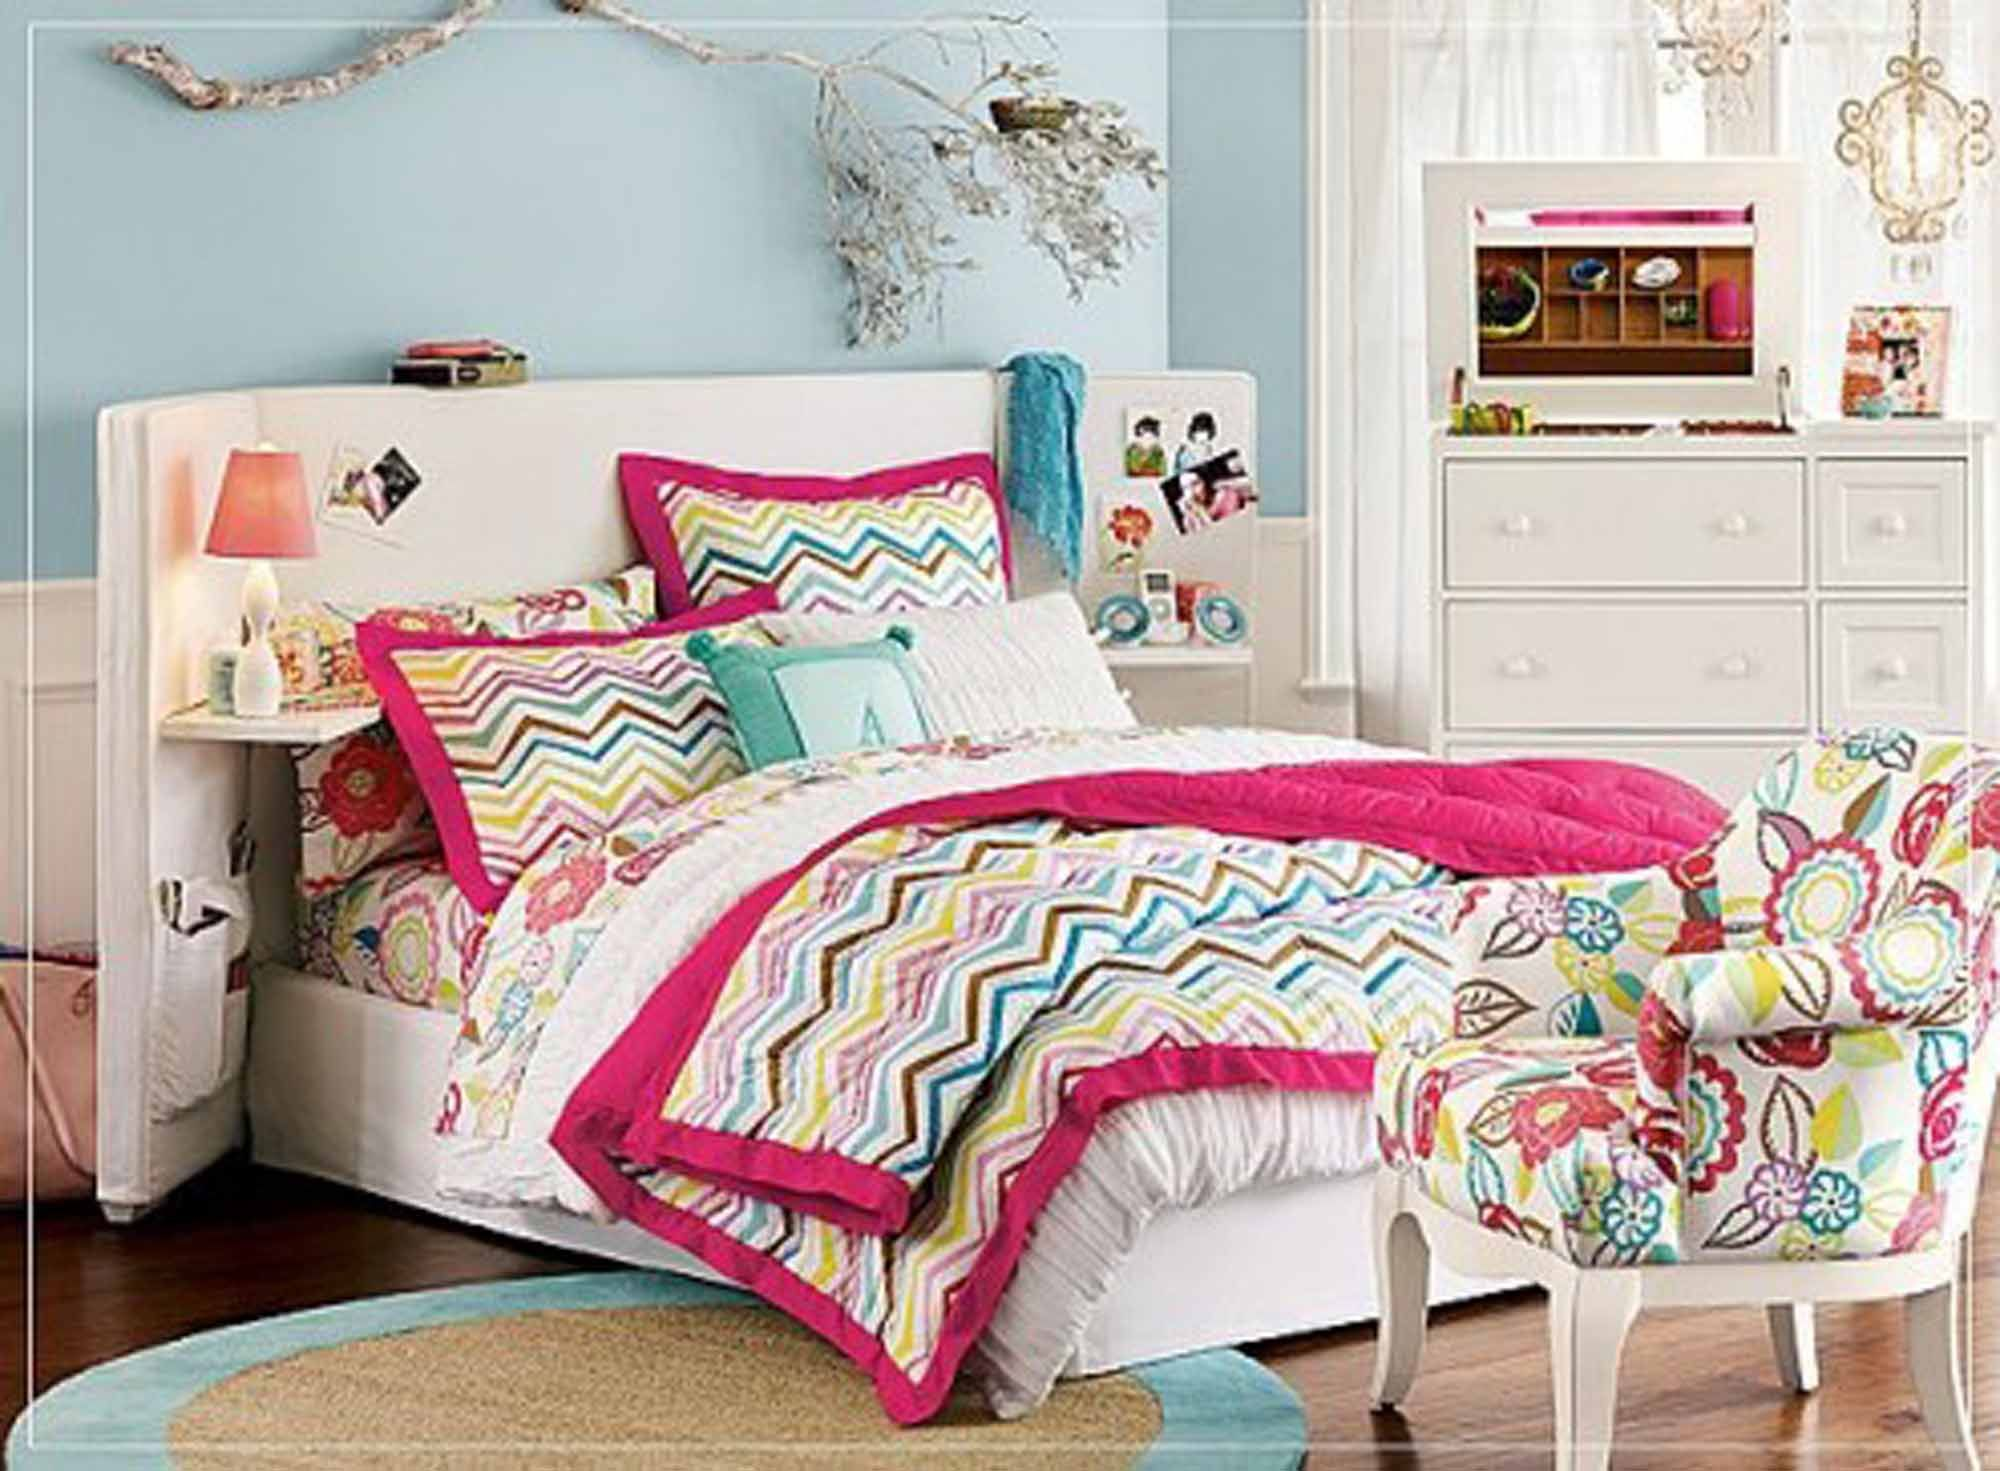 Colorful Bedding on White Bed inside Cute Room Ideas with Classic White Dresser and Cozy Chair